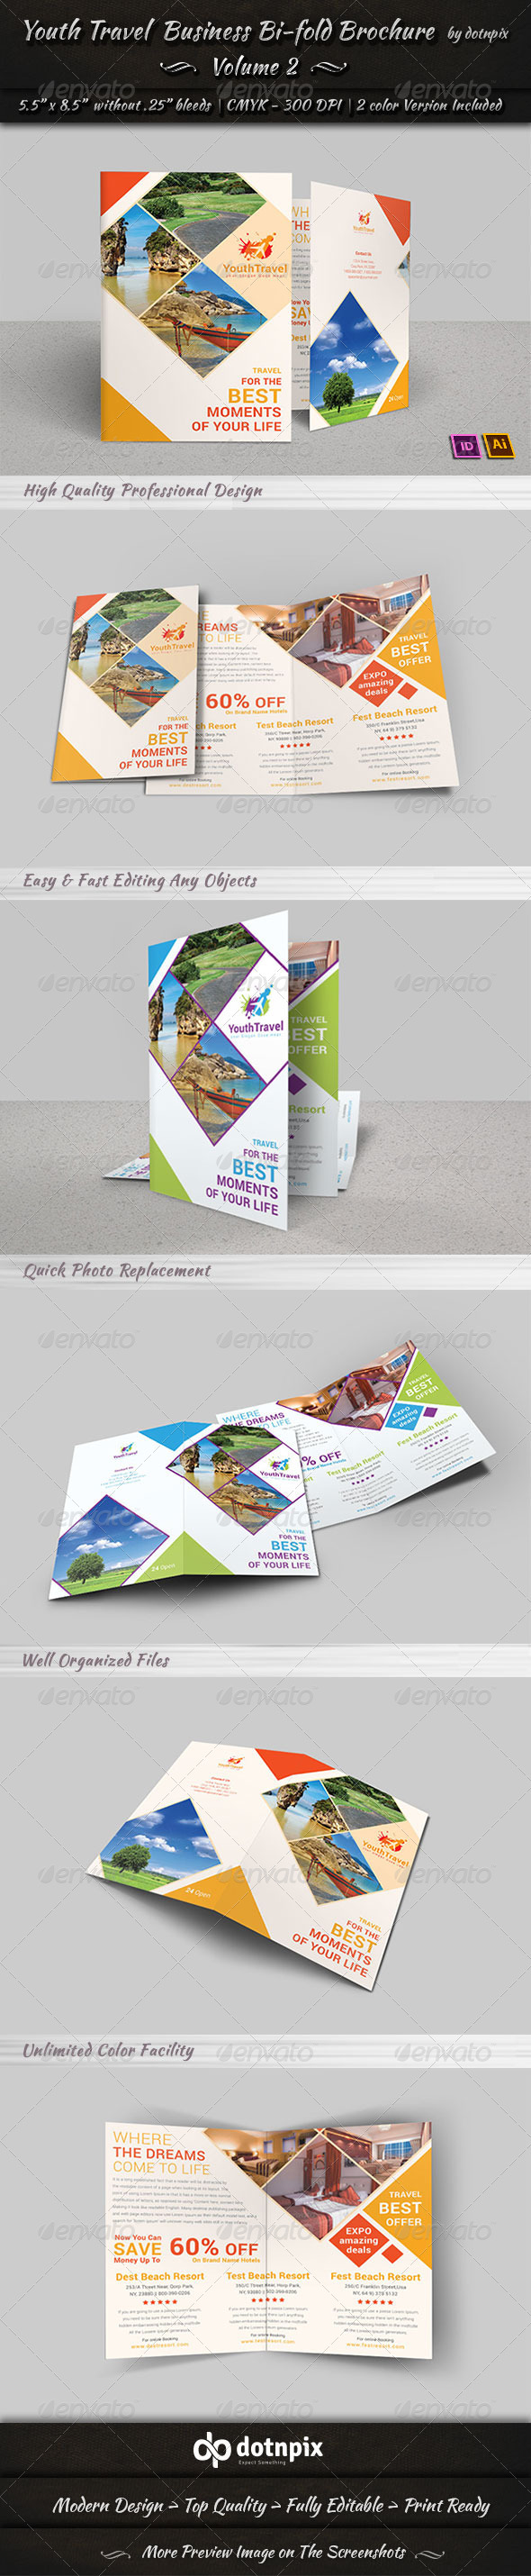 GraphicRiver Youth Travel Business Bi-Fold Brochure Volume 2 6875563